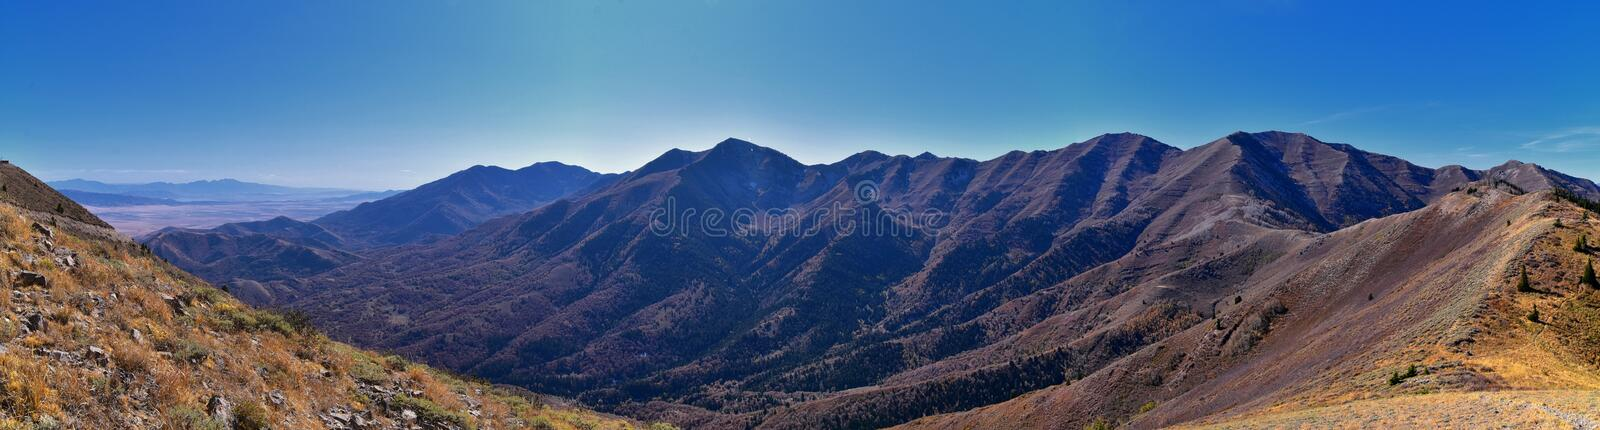 Wasatch Front Rocky Mountain landscapes from Oquirrh range looking at Utah Lake during fall. Panorama views near Provo, Timpanogos. Lone and Twin Peaks. Salt royalty free stock image